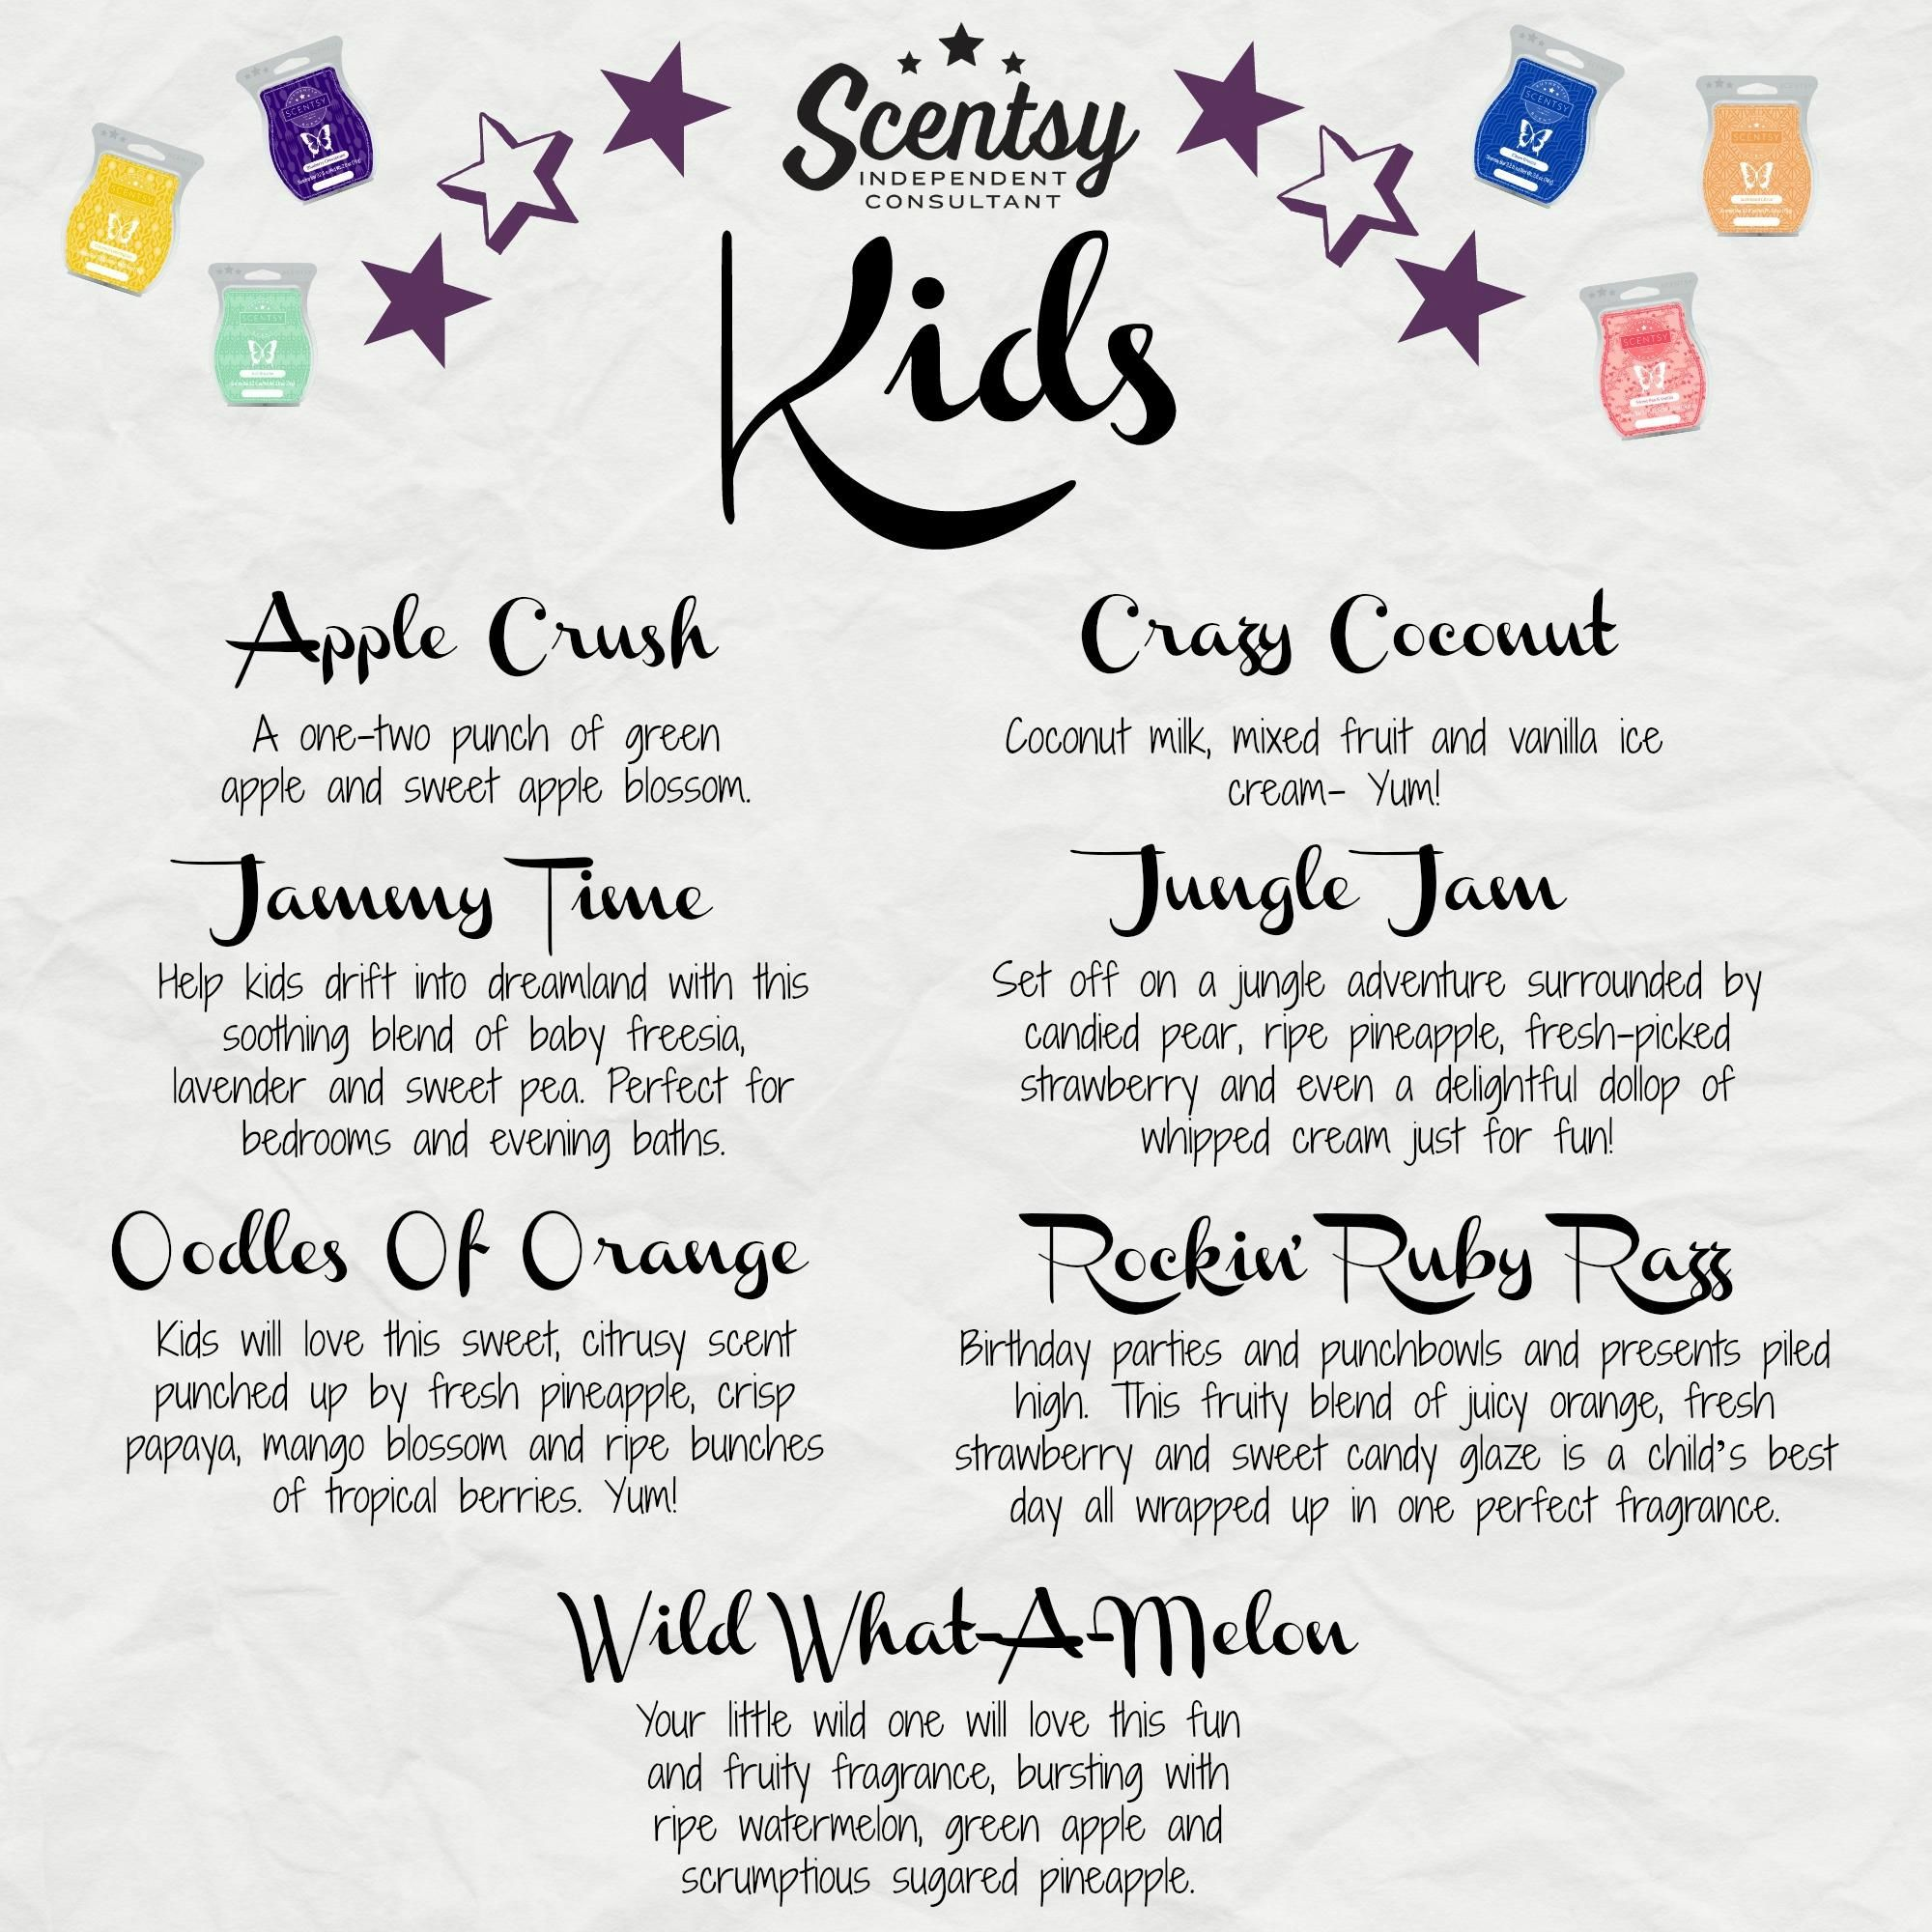 Check Out Scentsyu0027s Kid Friendly Scents Perfect For Any Childu0027s Bedroom,  Bathroom, Playroom